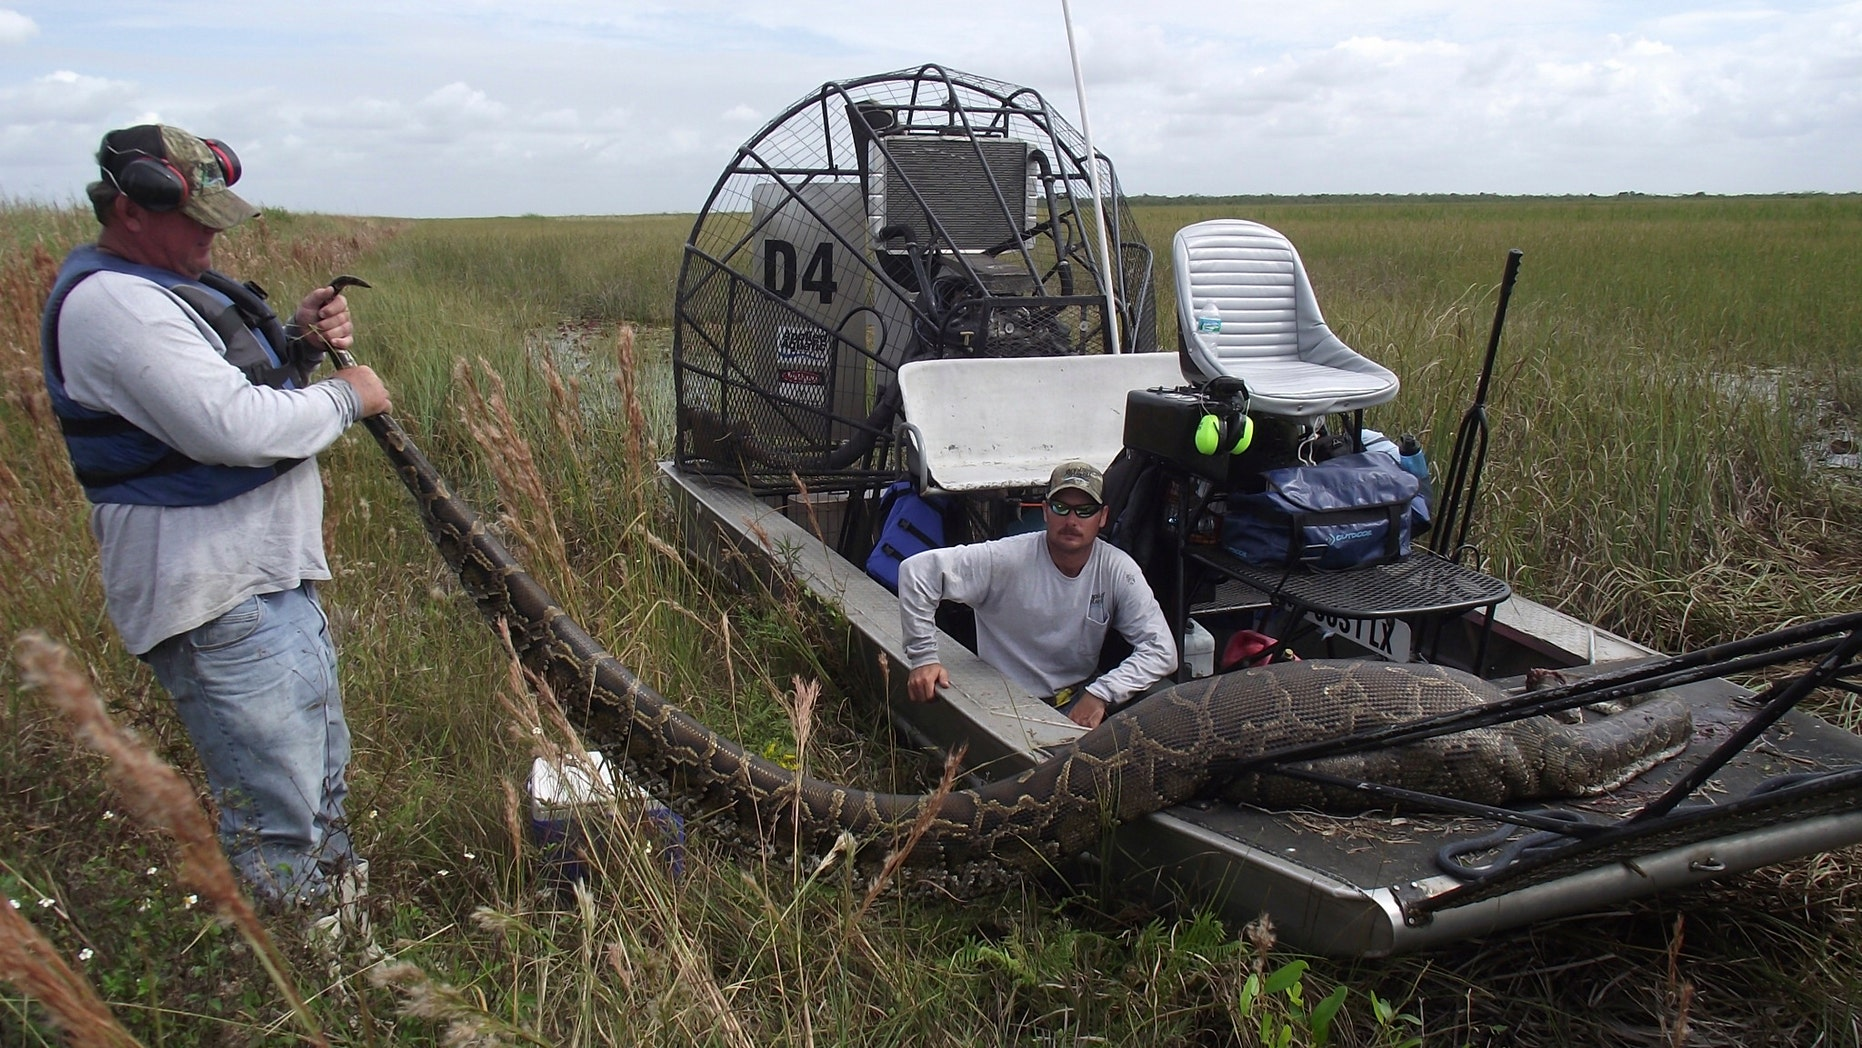 Oct. 27, 2011: the South Florida Water Management District, workers are shown holding a nearly 16-foot long Burmese Python that was captured and killed in Everglades National Park, Florida.